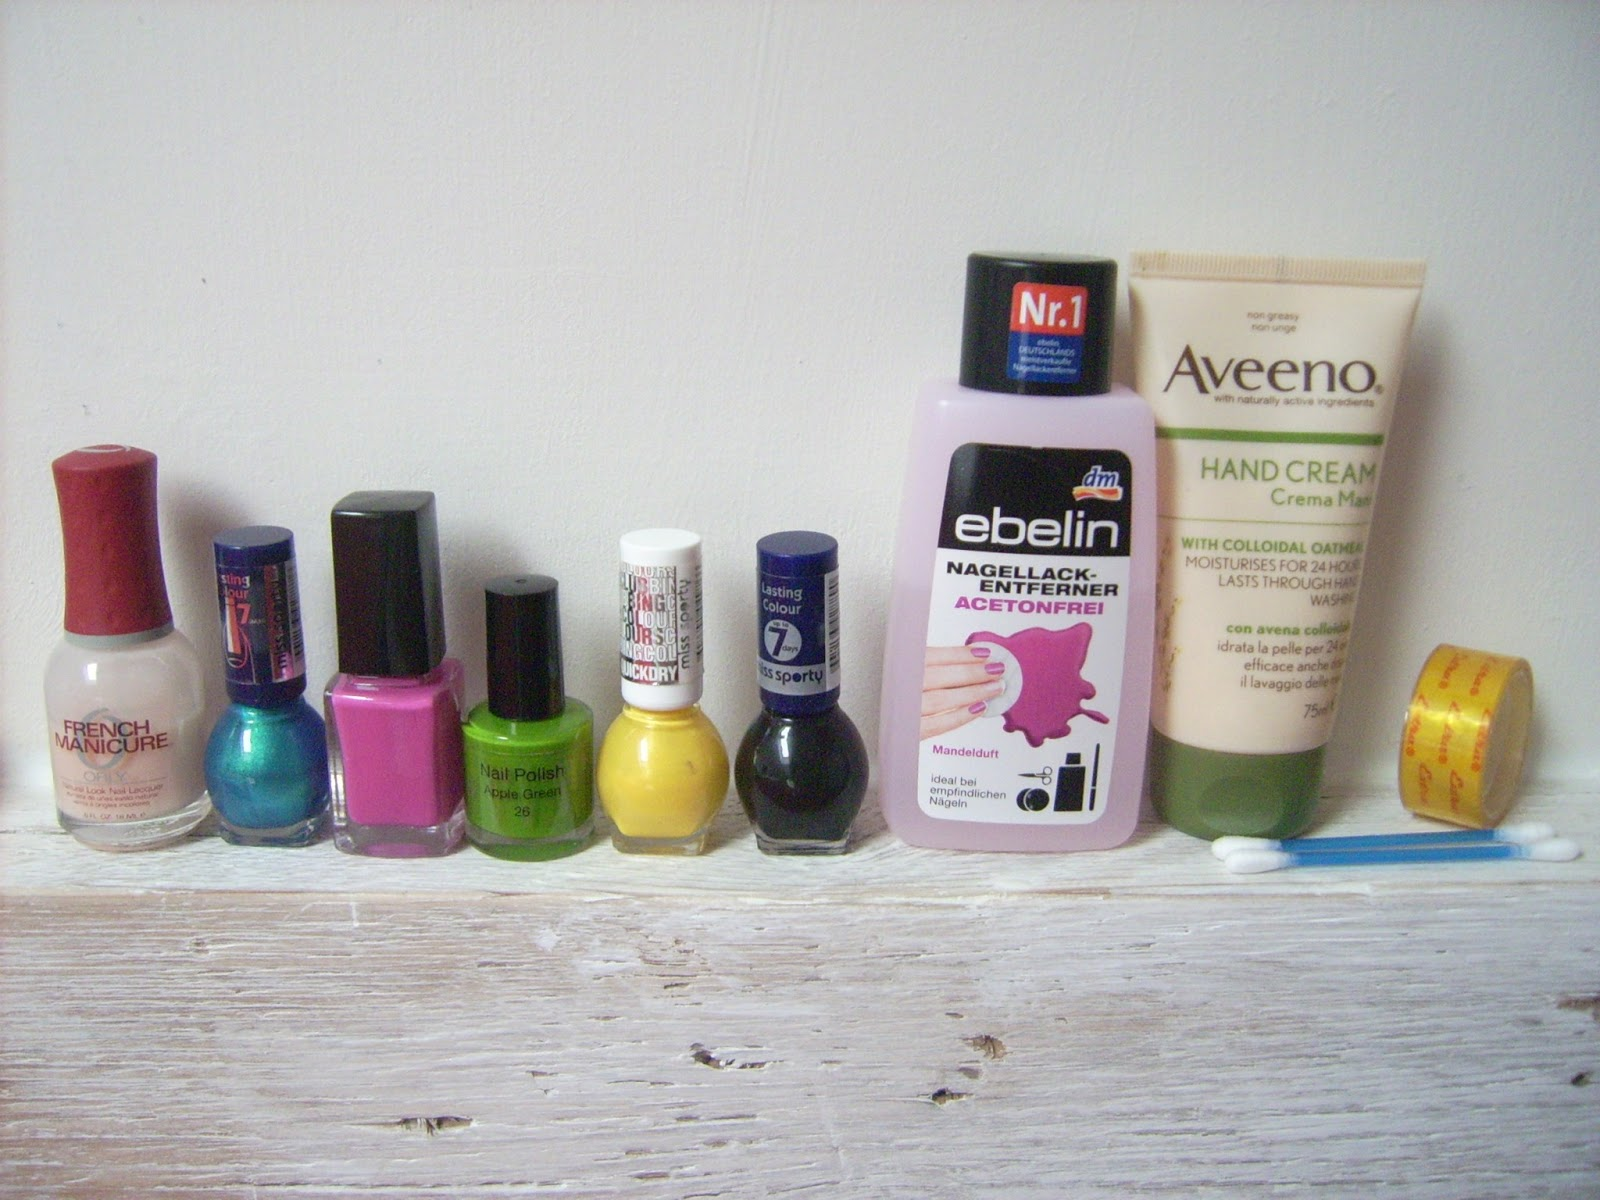 orly, miss sporty, ebelin, aveeno hand cream